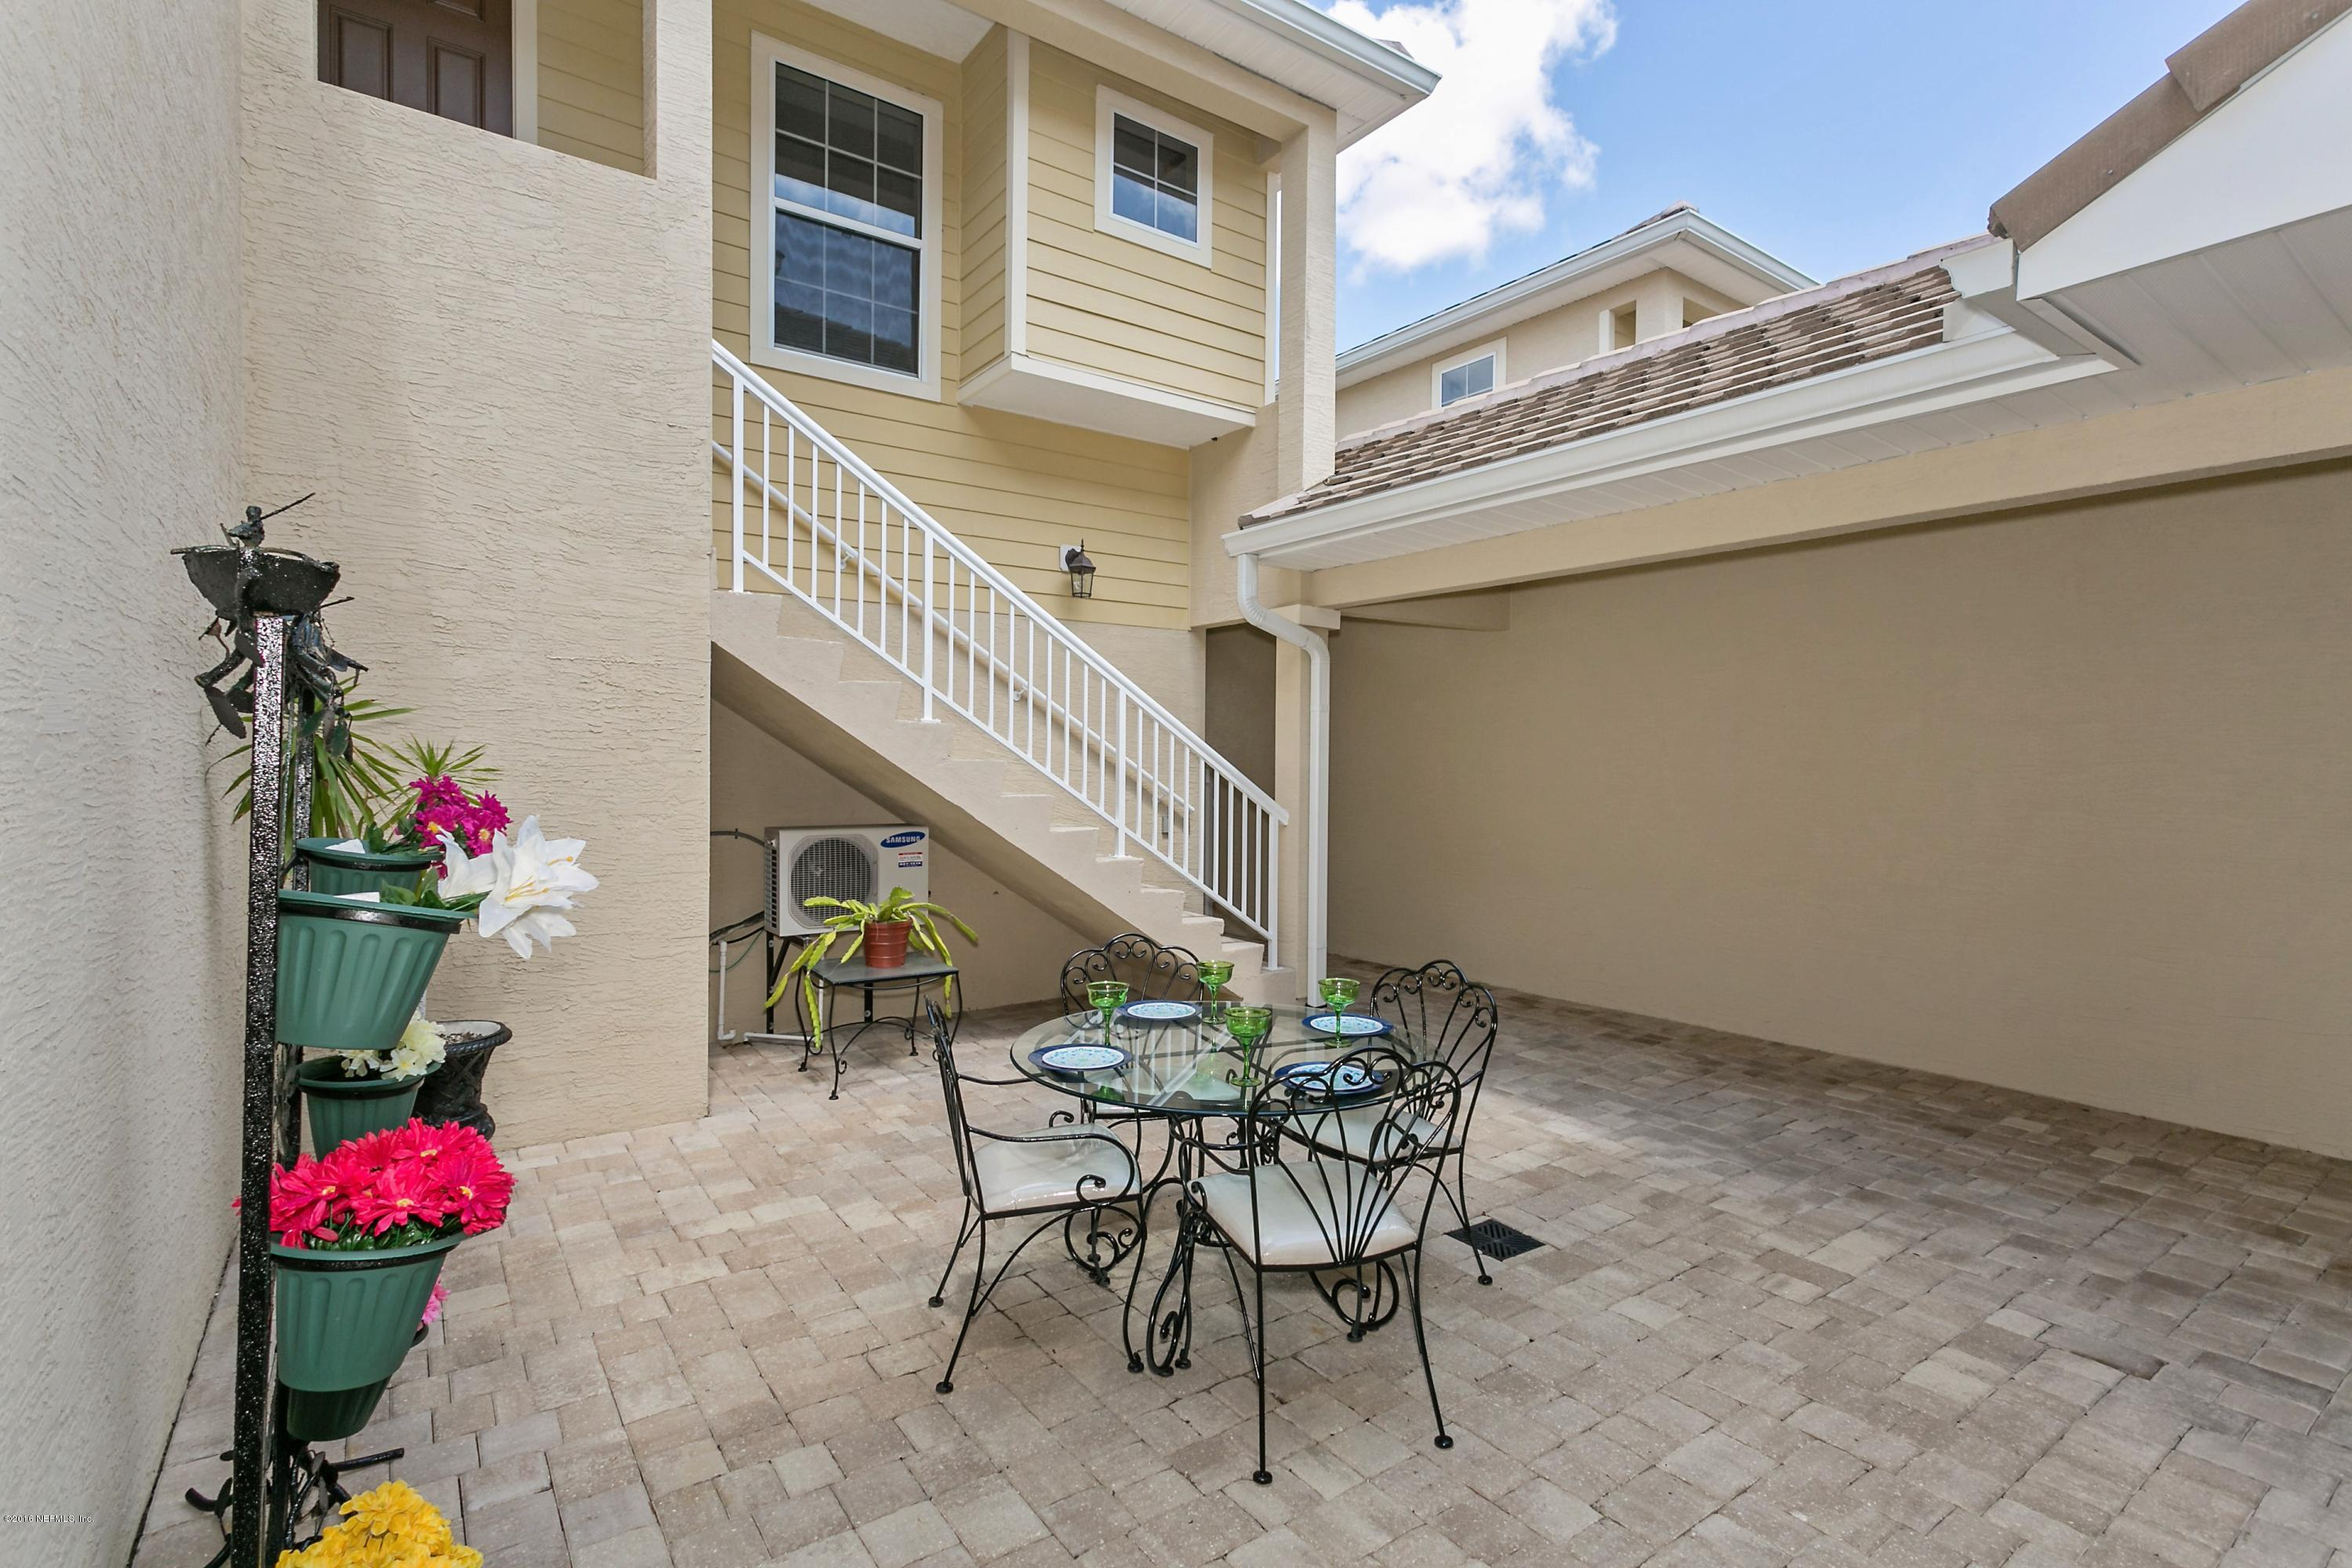 492 HEDGEWOOD, ST AUGUSTINE, FLORIDA 32092, 4 Bedrooms Bedrooms, ,3 BathroomsBathrooms,Residential - townhome,For sale,HEDGEWOOD,846766